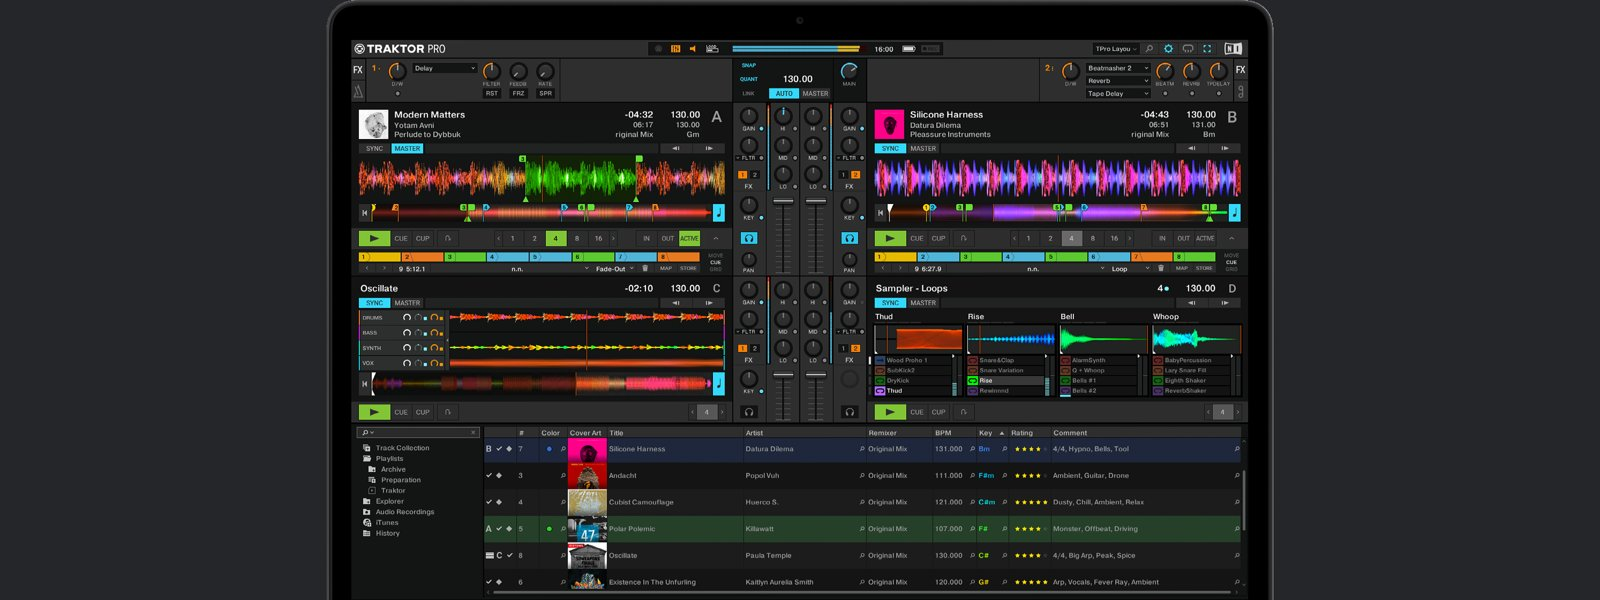 Traktor Pro Crack Mac Latest!